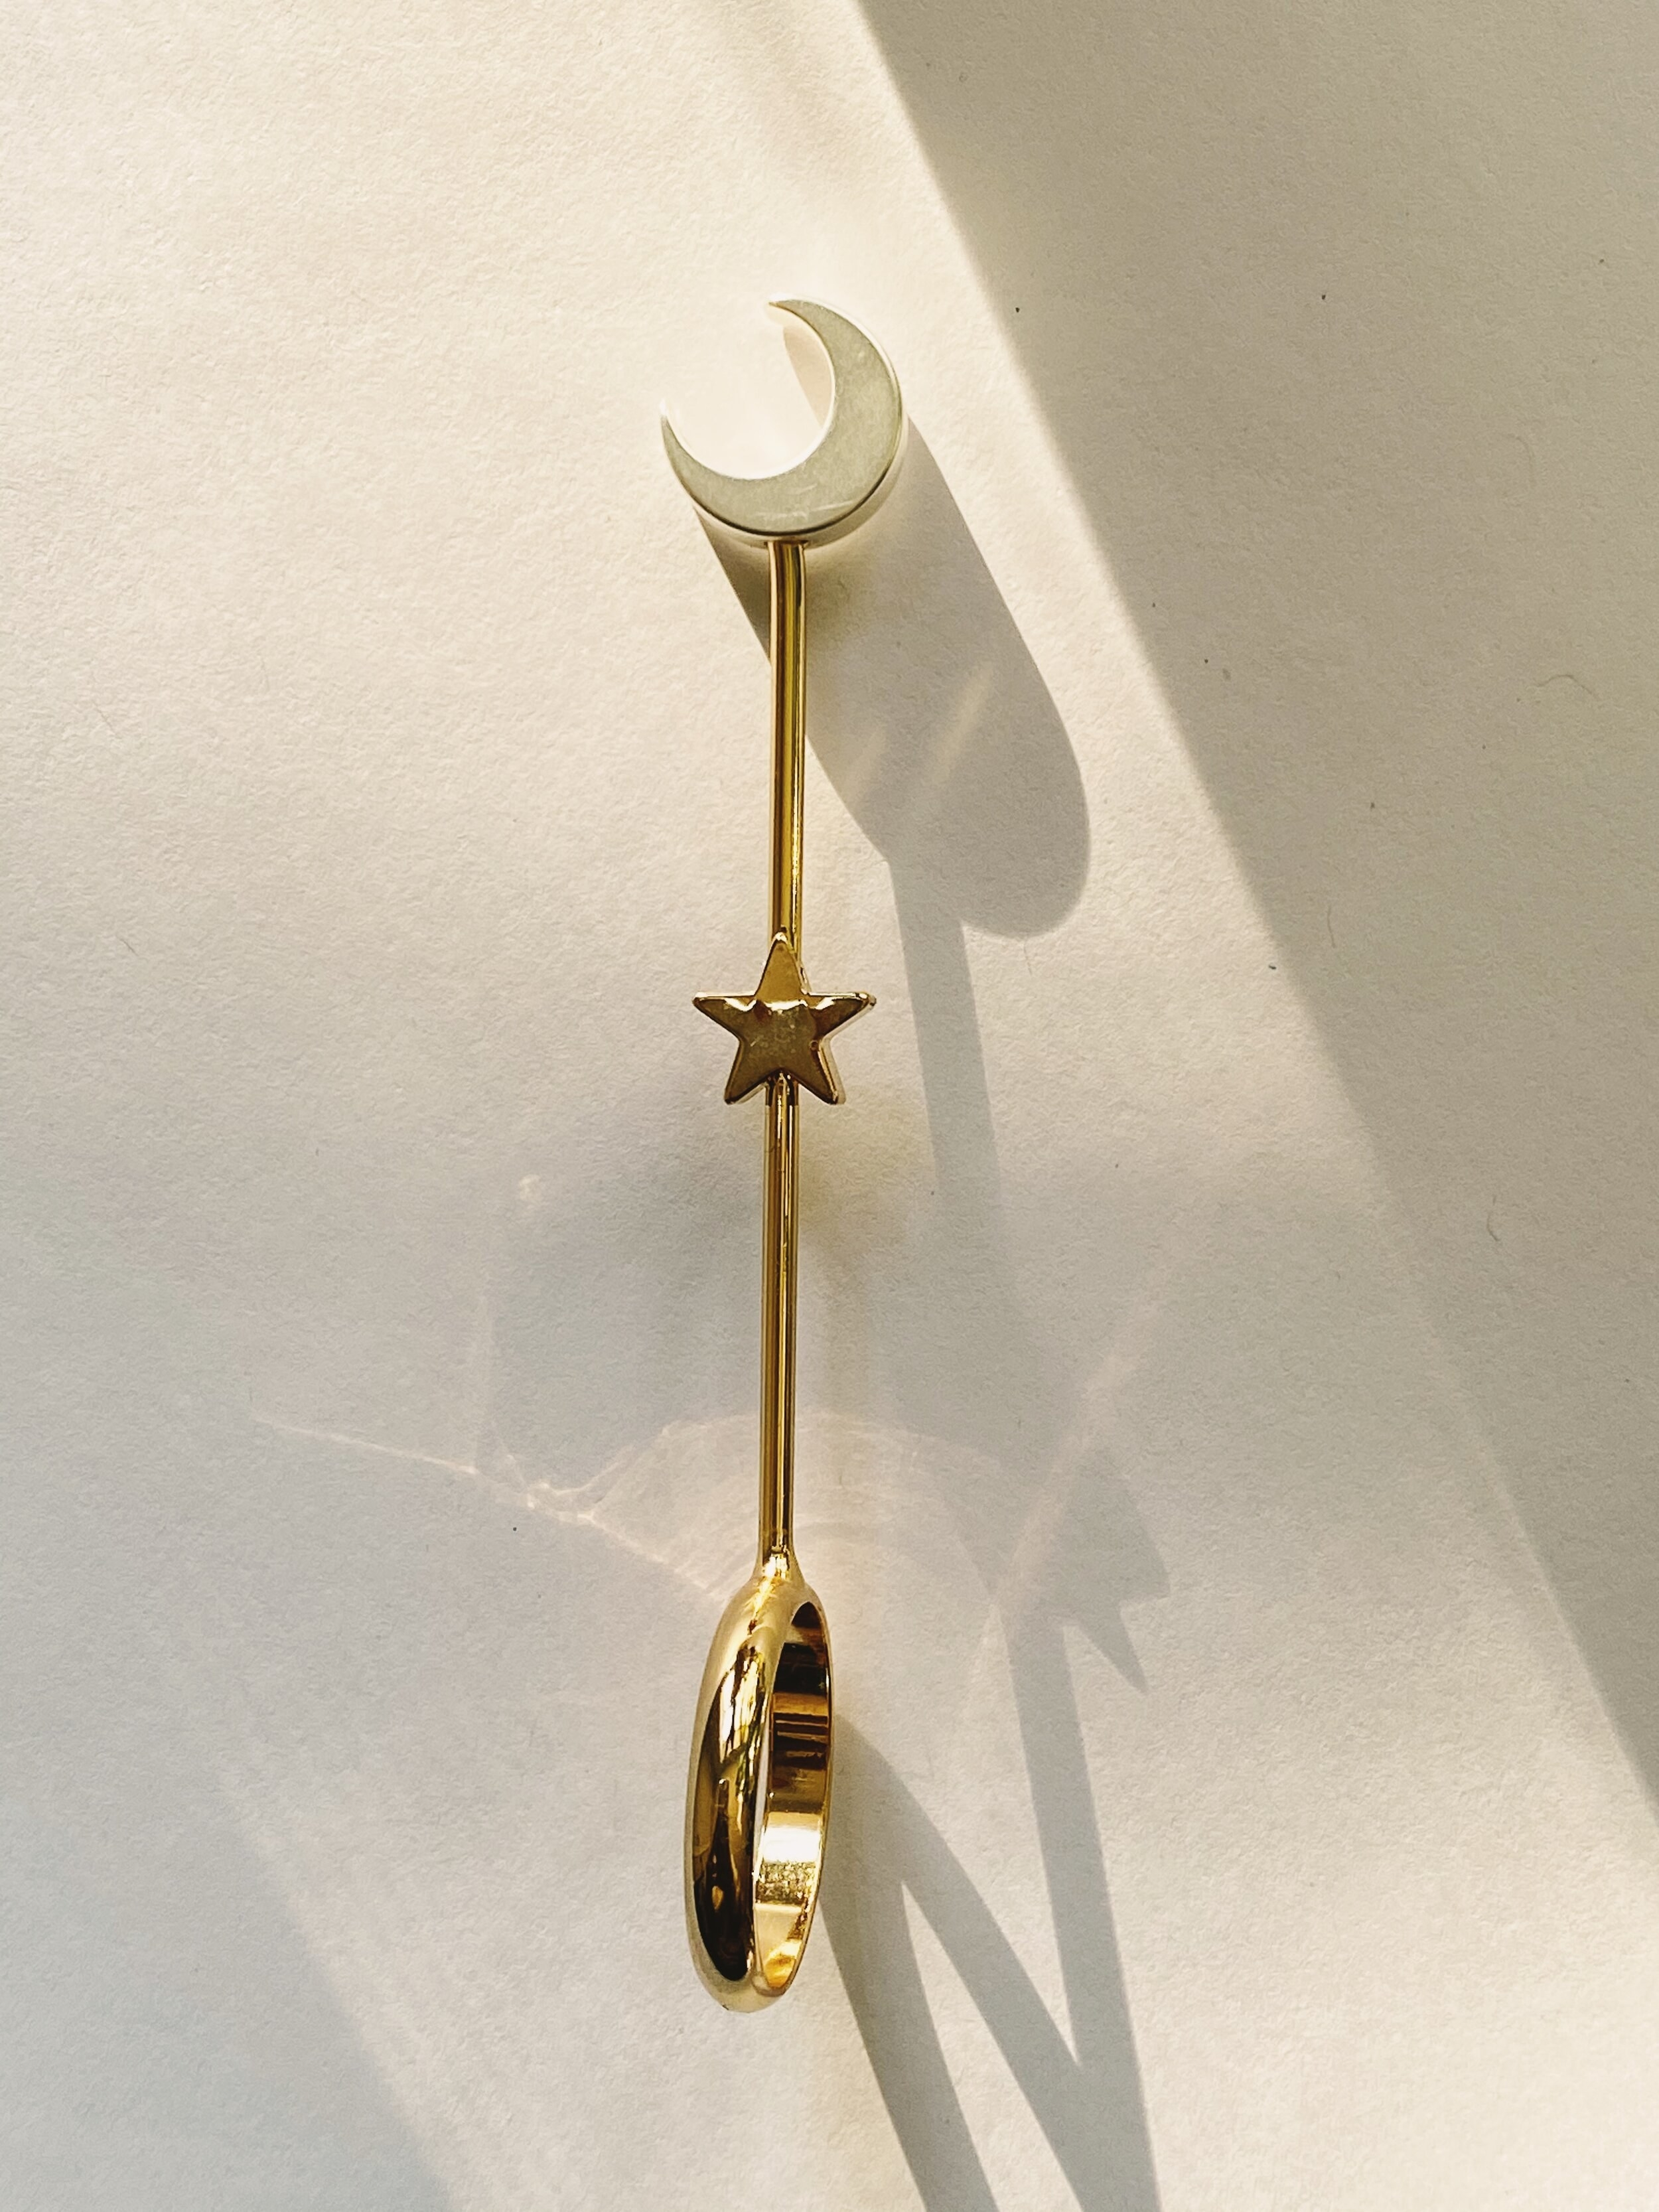 the ring joint holder with a crescent moon as the place where you place the joint and the holder is gold plated with a star in the center